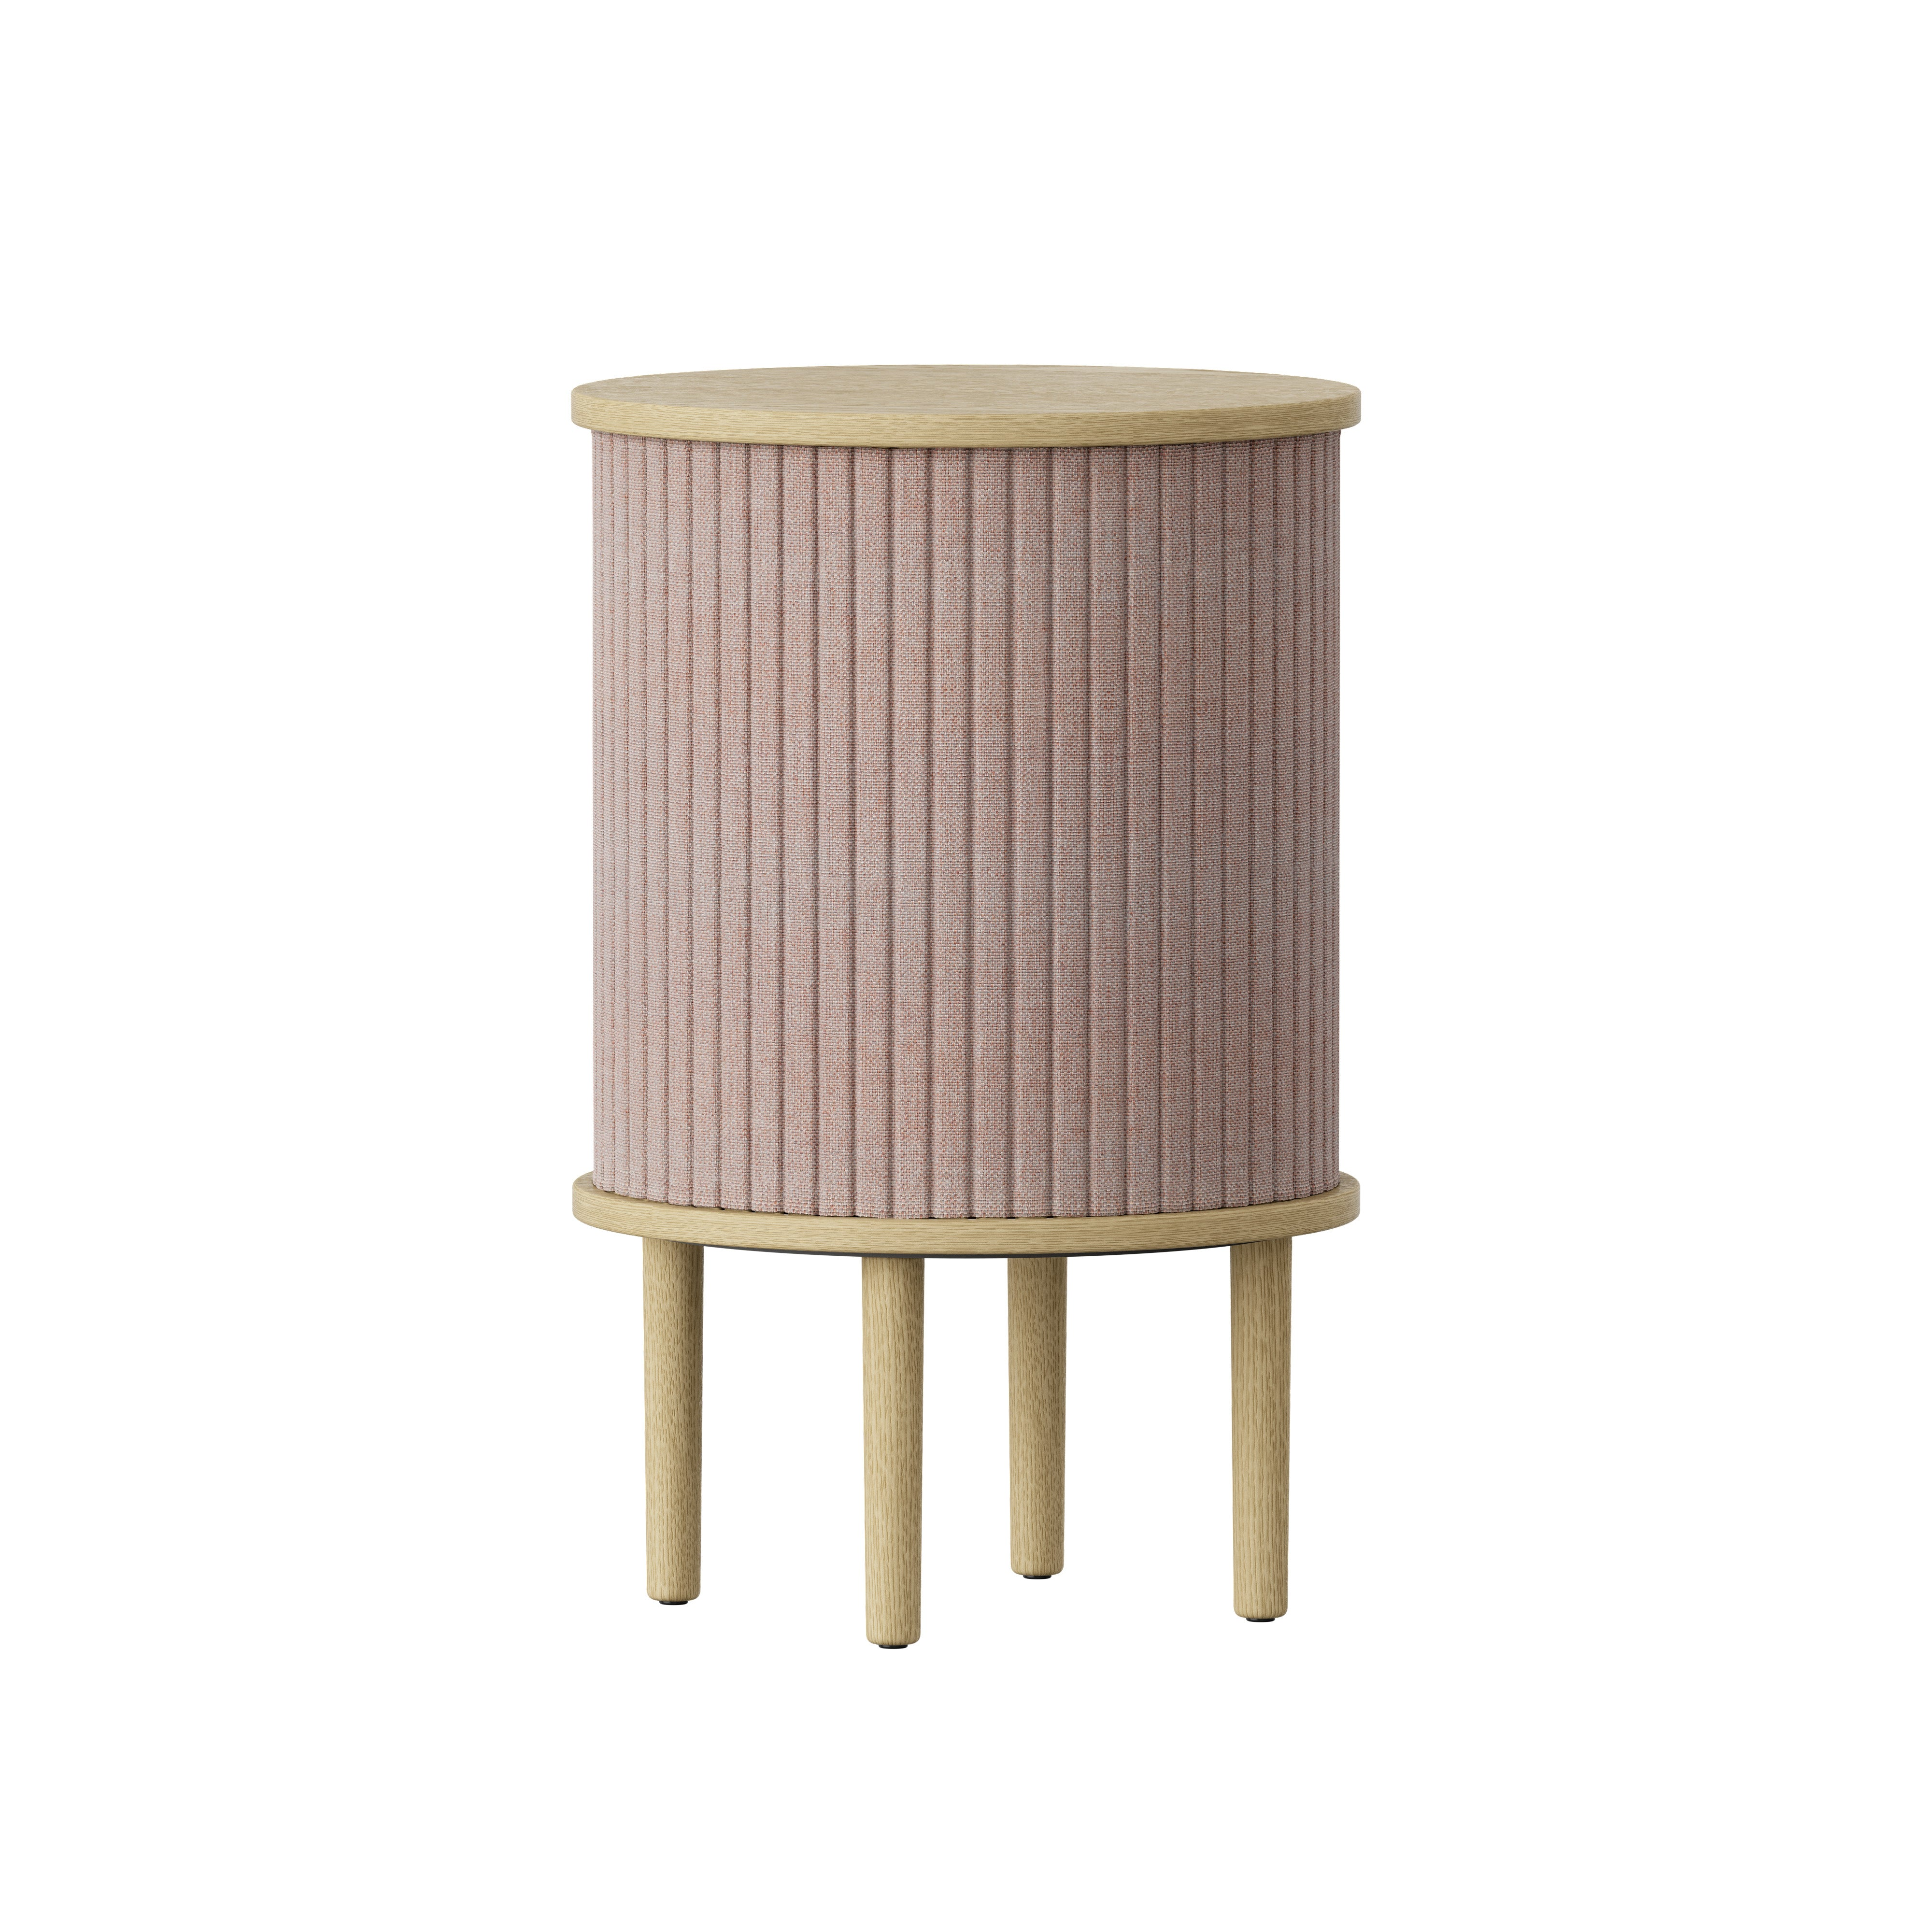 Audacious Side Table: Dusty Rose